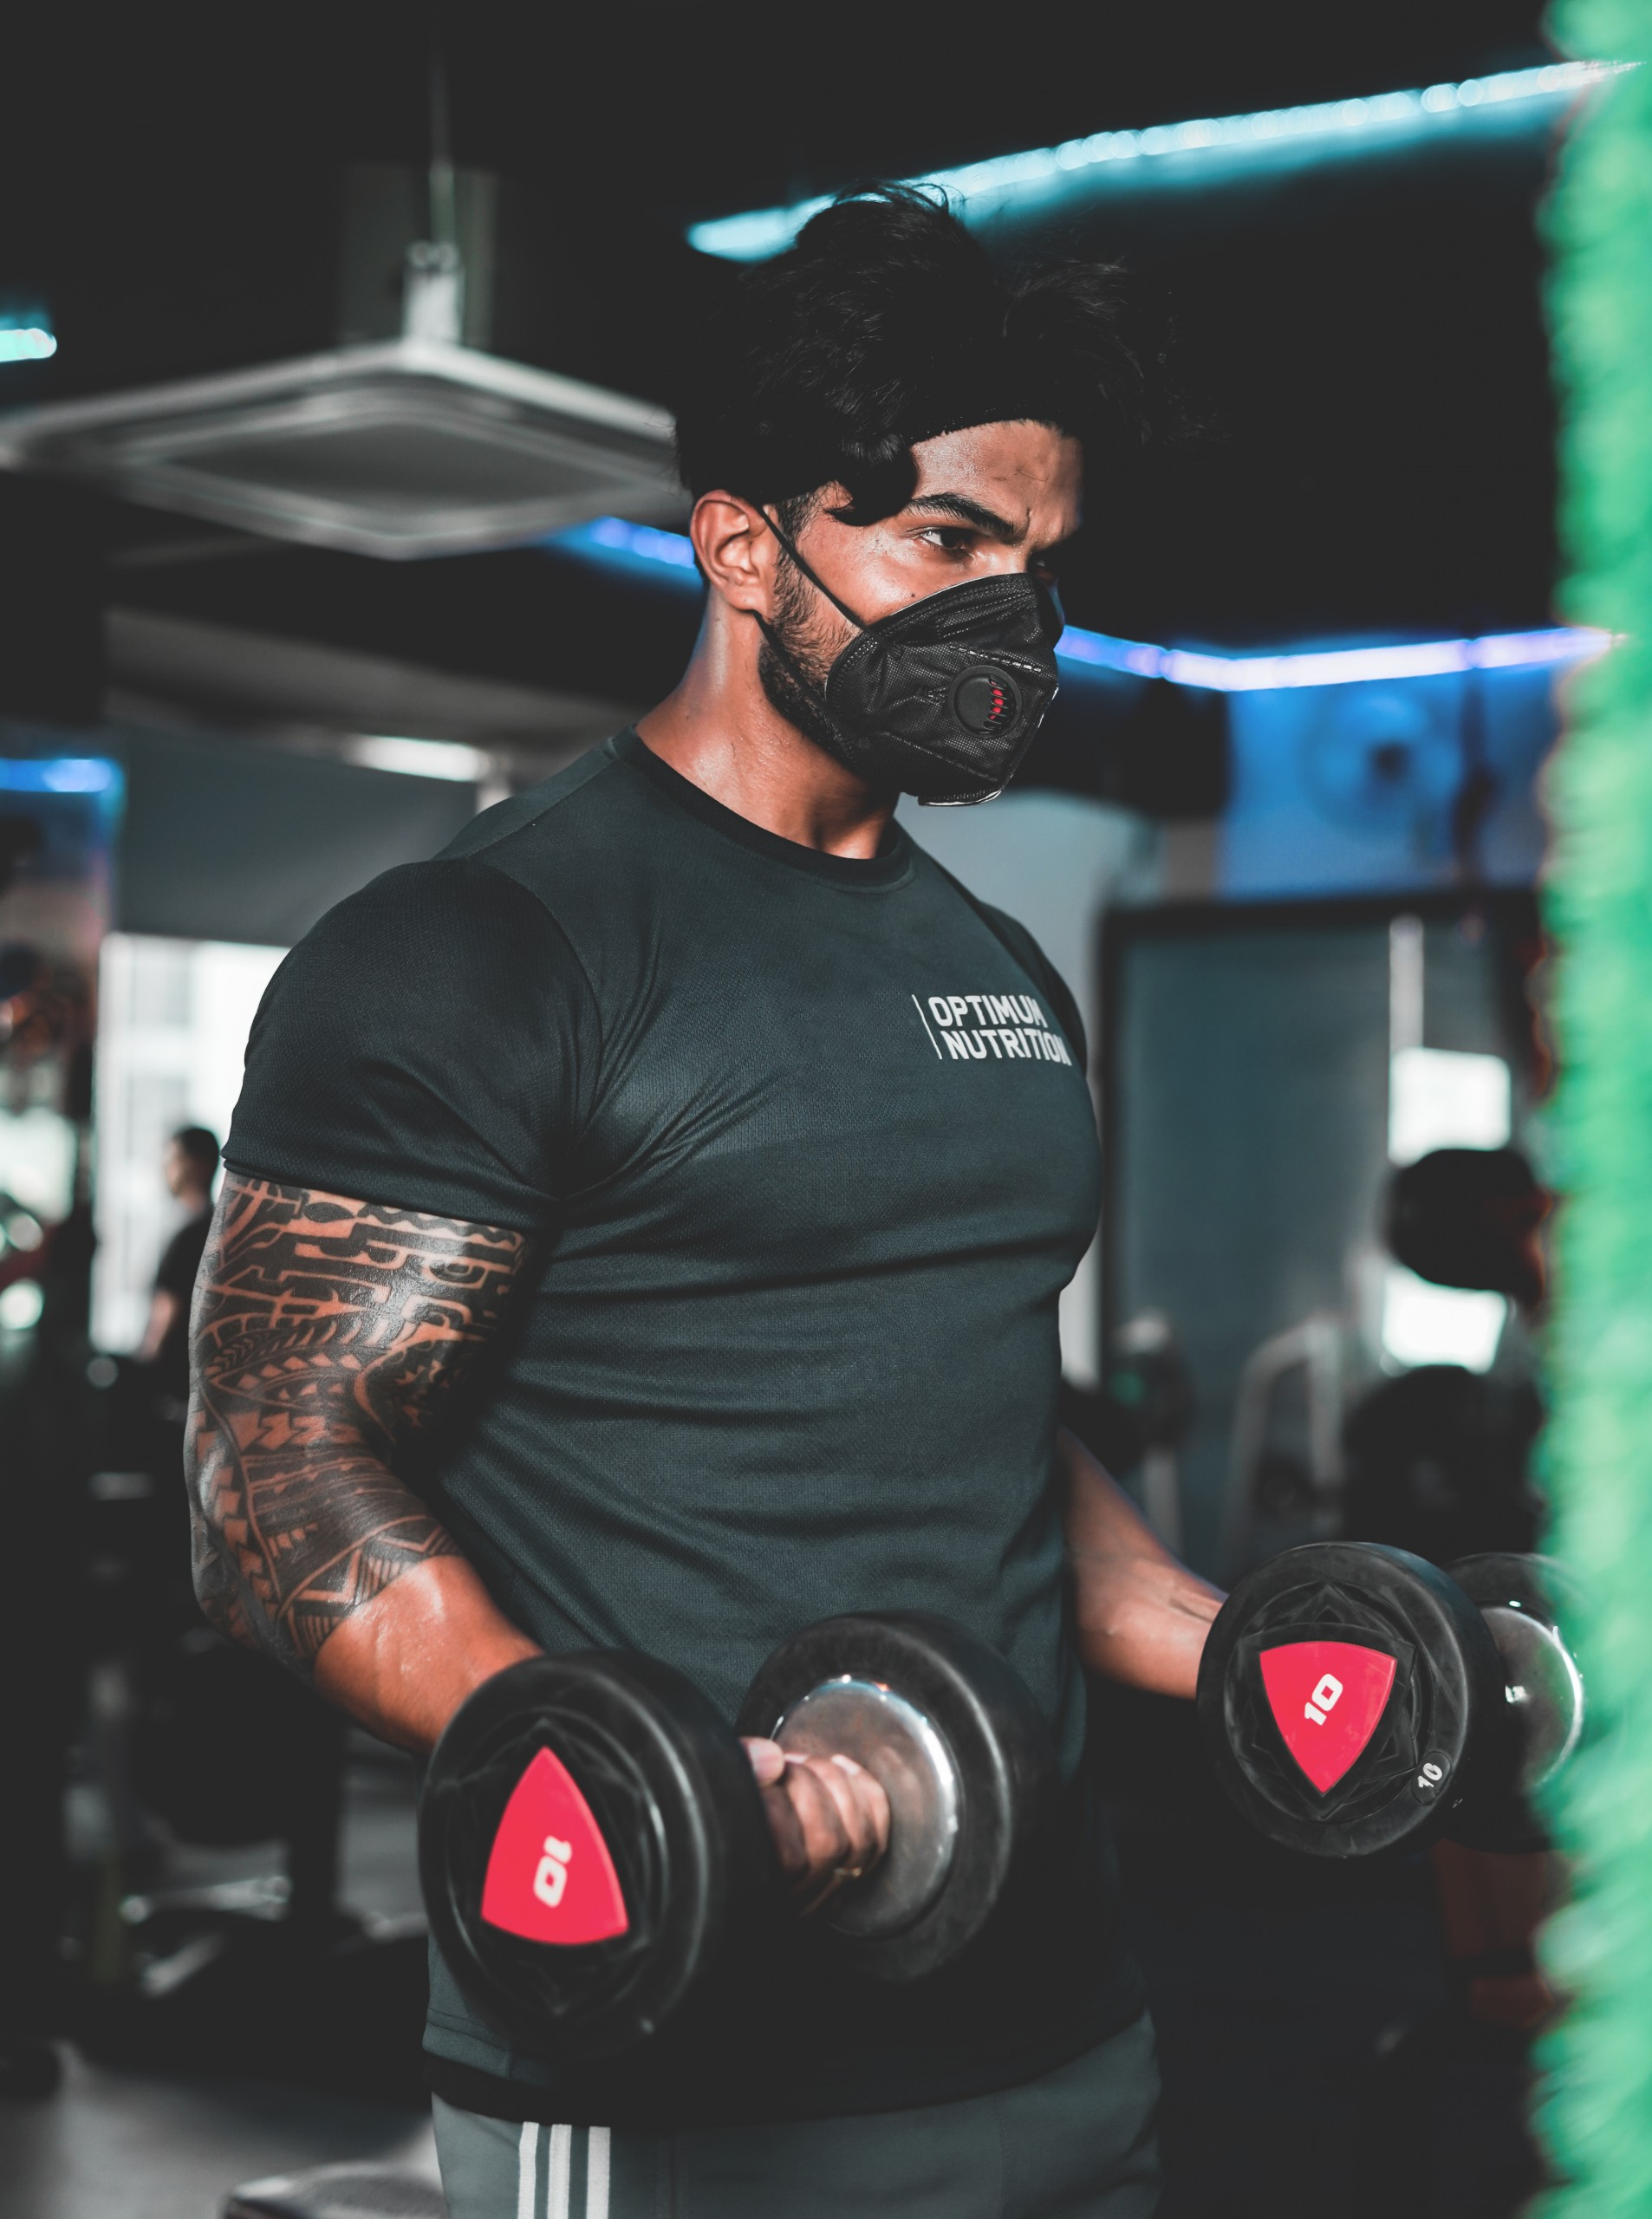 Man working out in a gym with a mask on